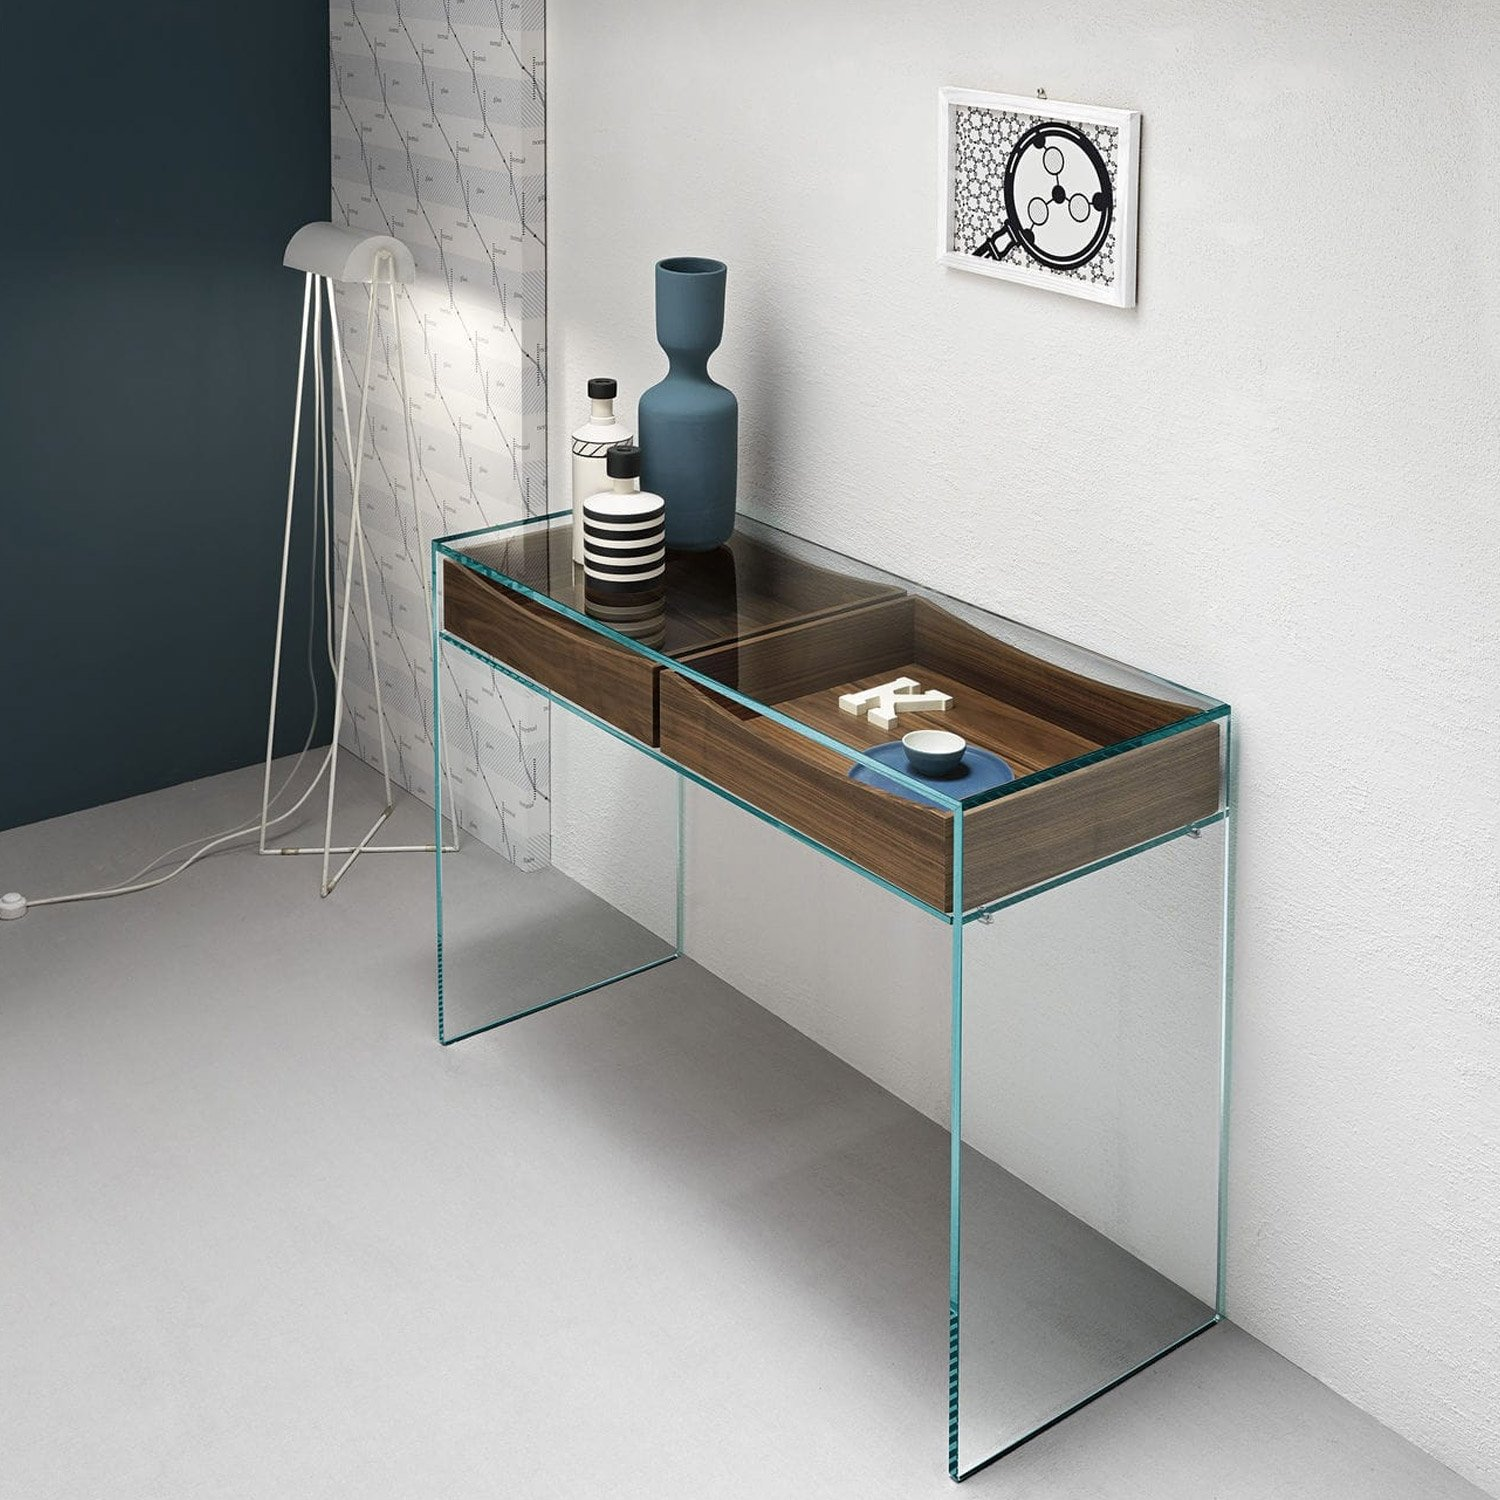 gulliver glass console table with shelf or drawers by tonelli klarity glass furniture. Black Bedroom Furniture Sets. Home Design Ideas